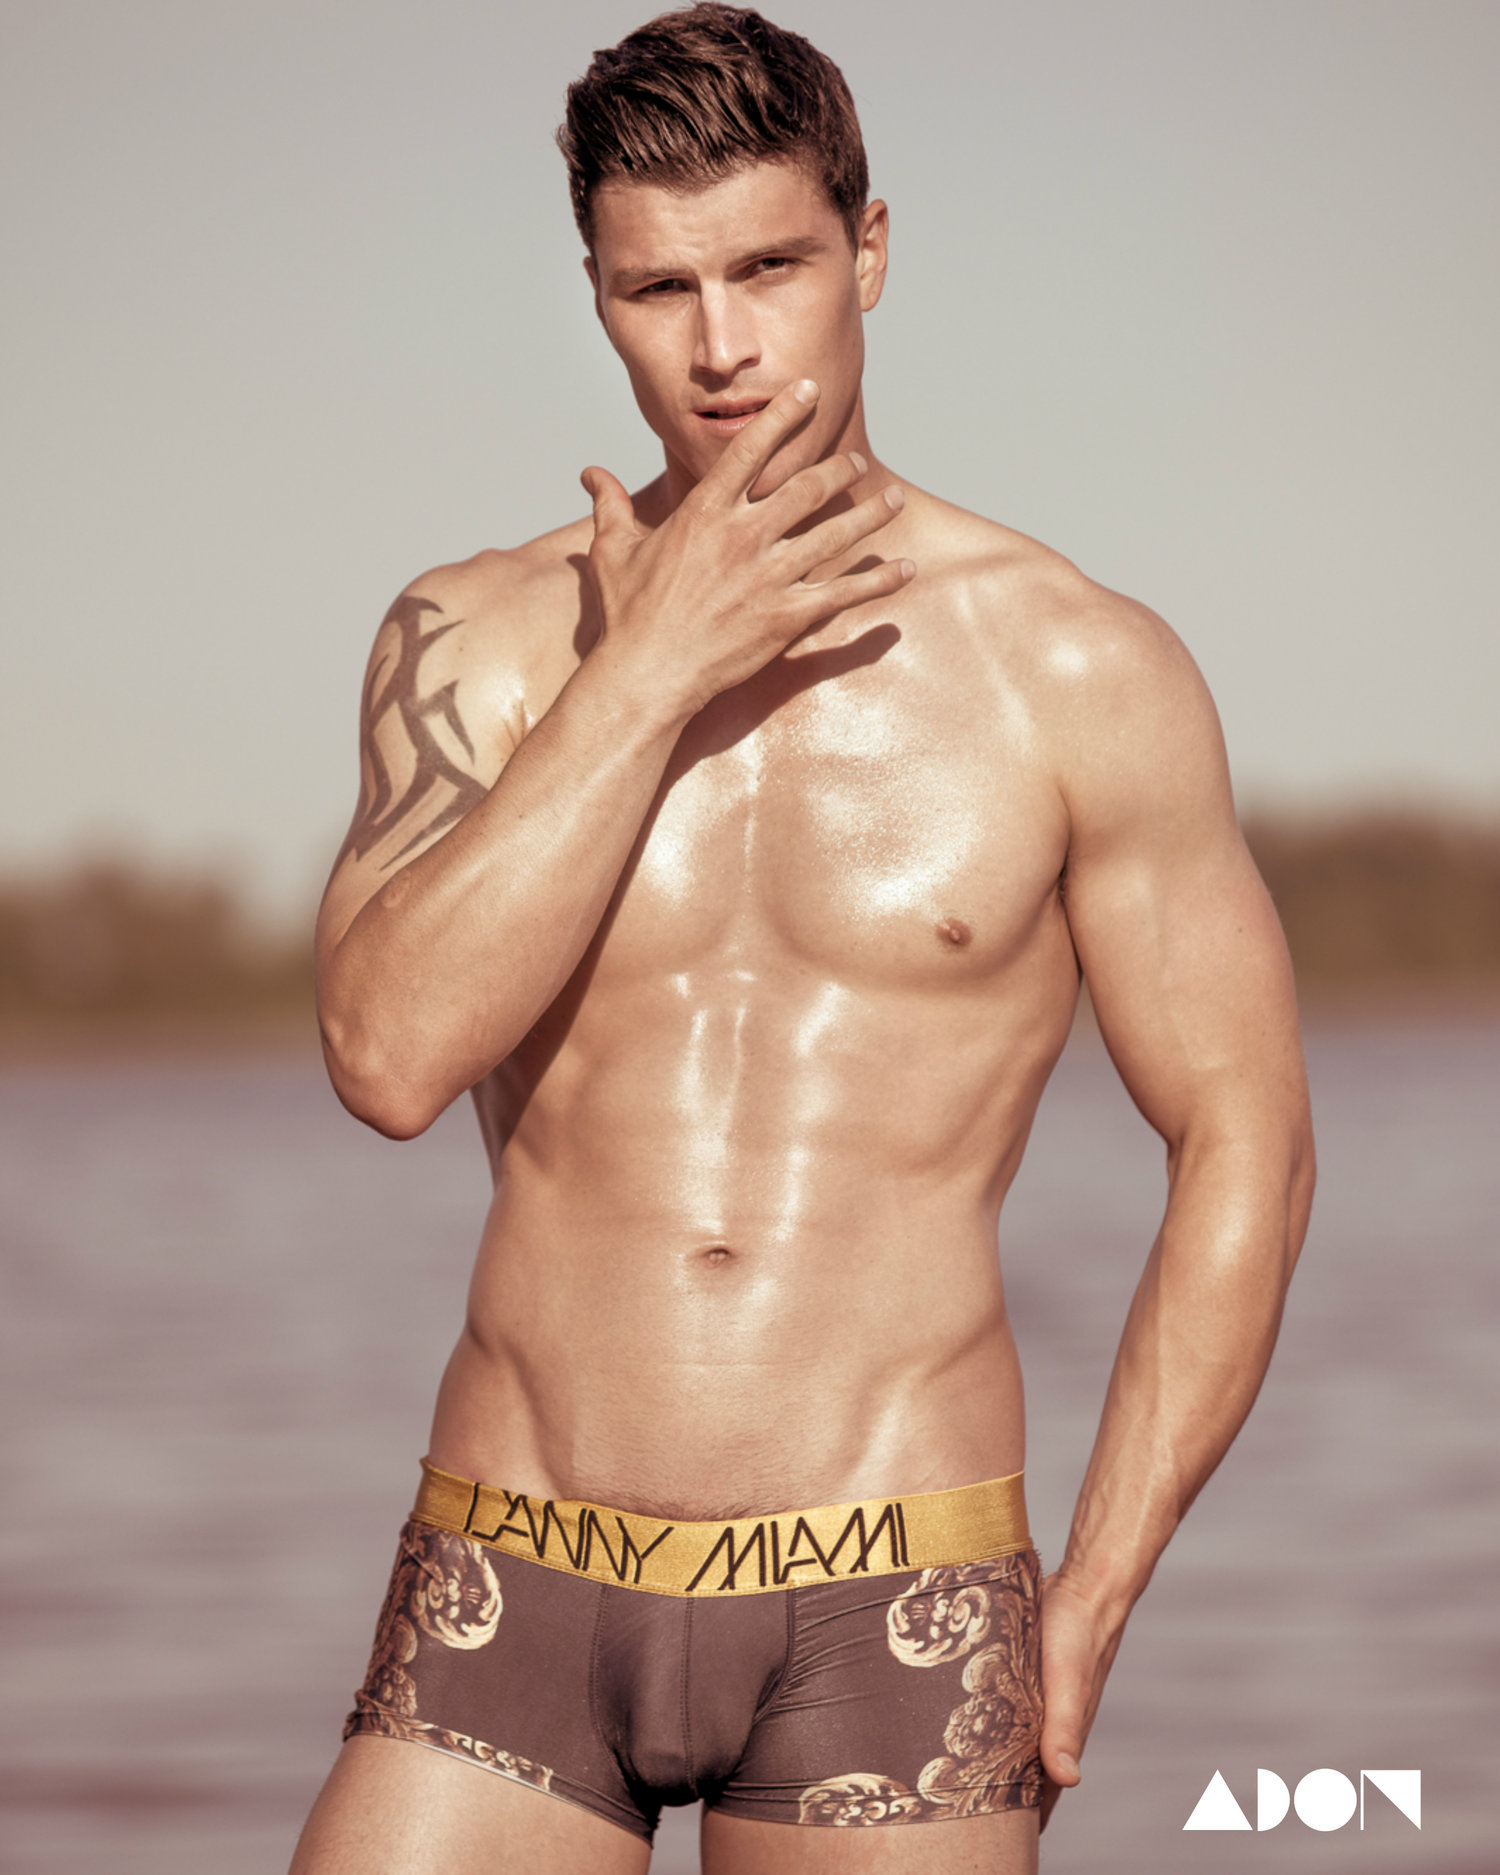 068e86b86fe Adon Exclusive: Model Jesse Tyler By Paul Jamnicky — Adon | Men's ...